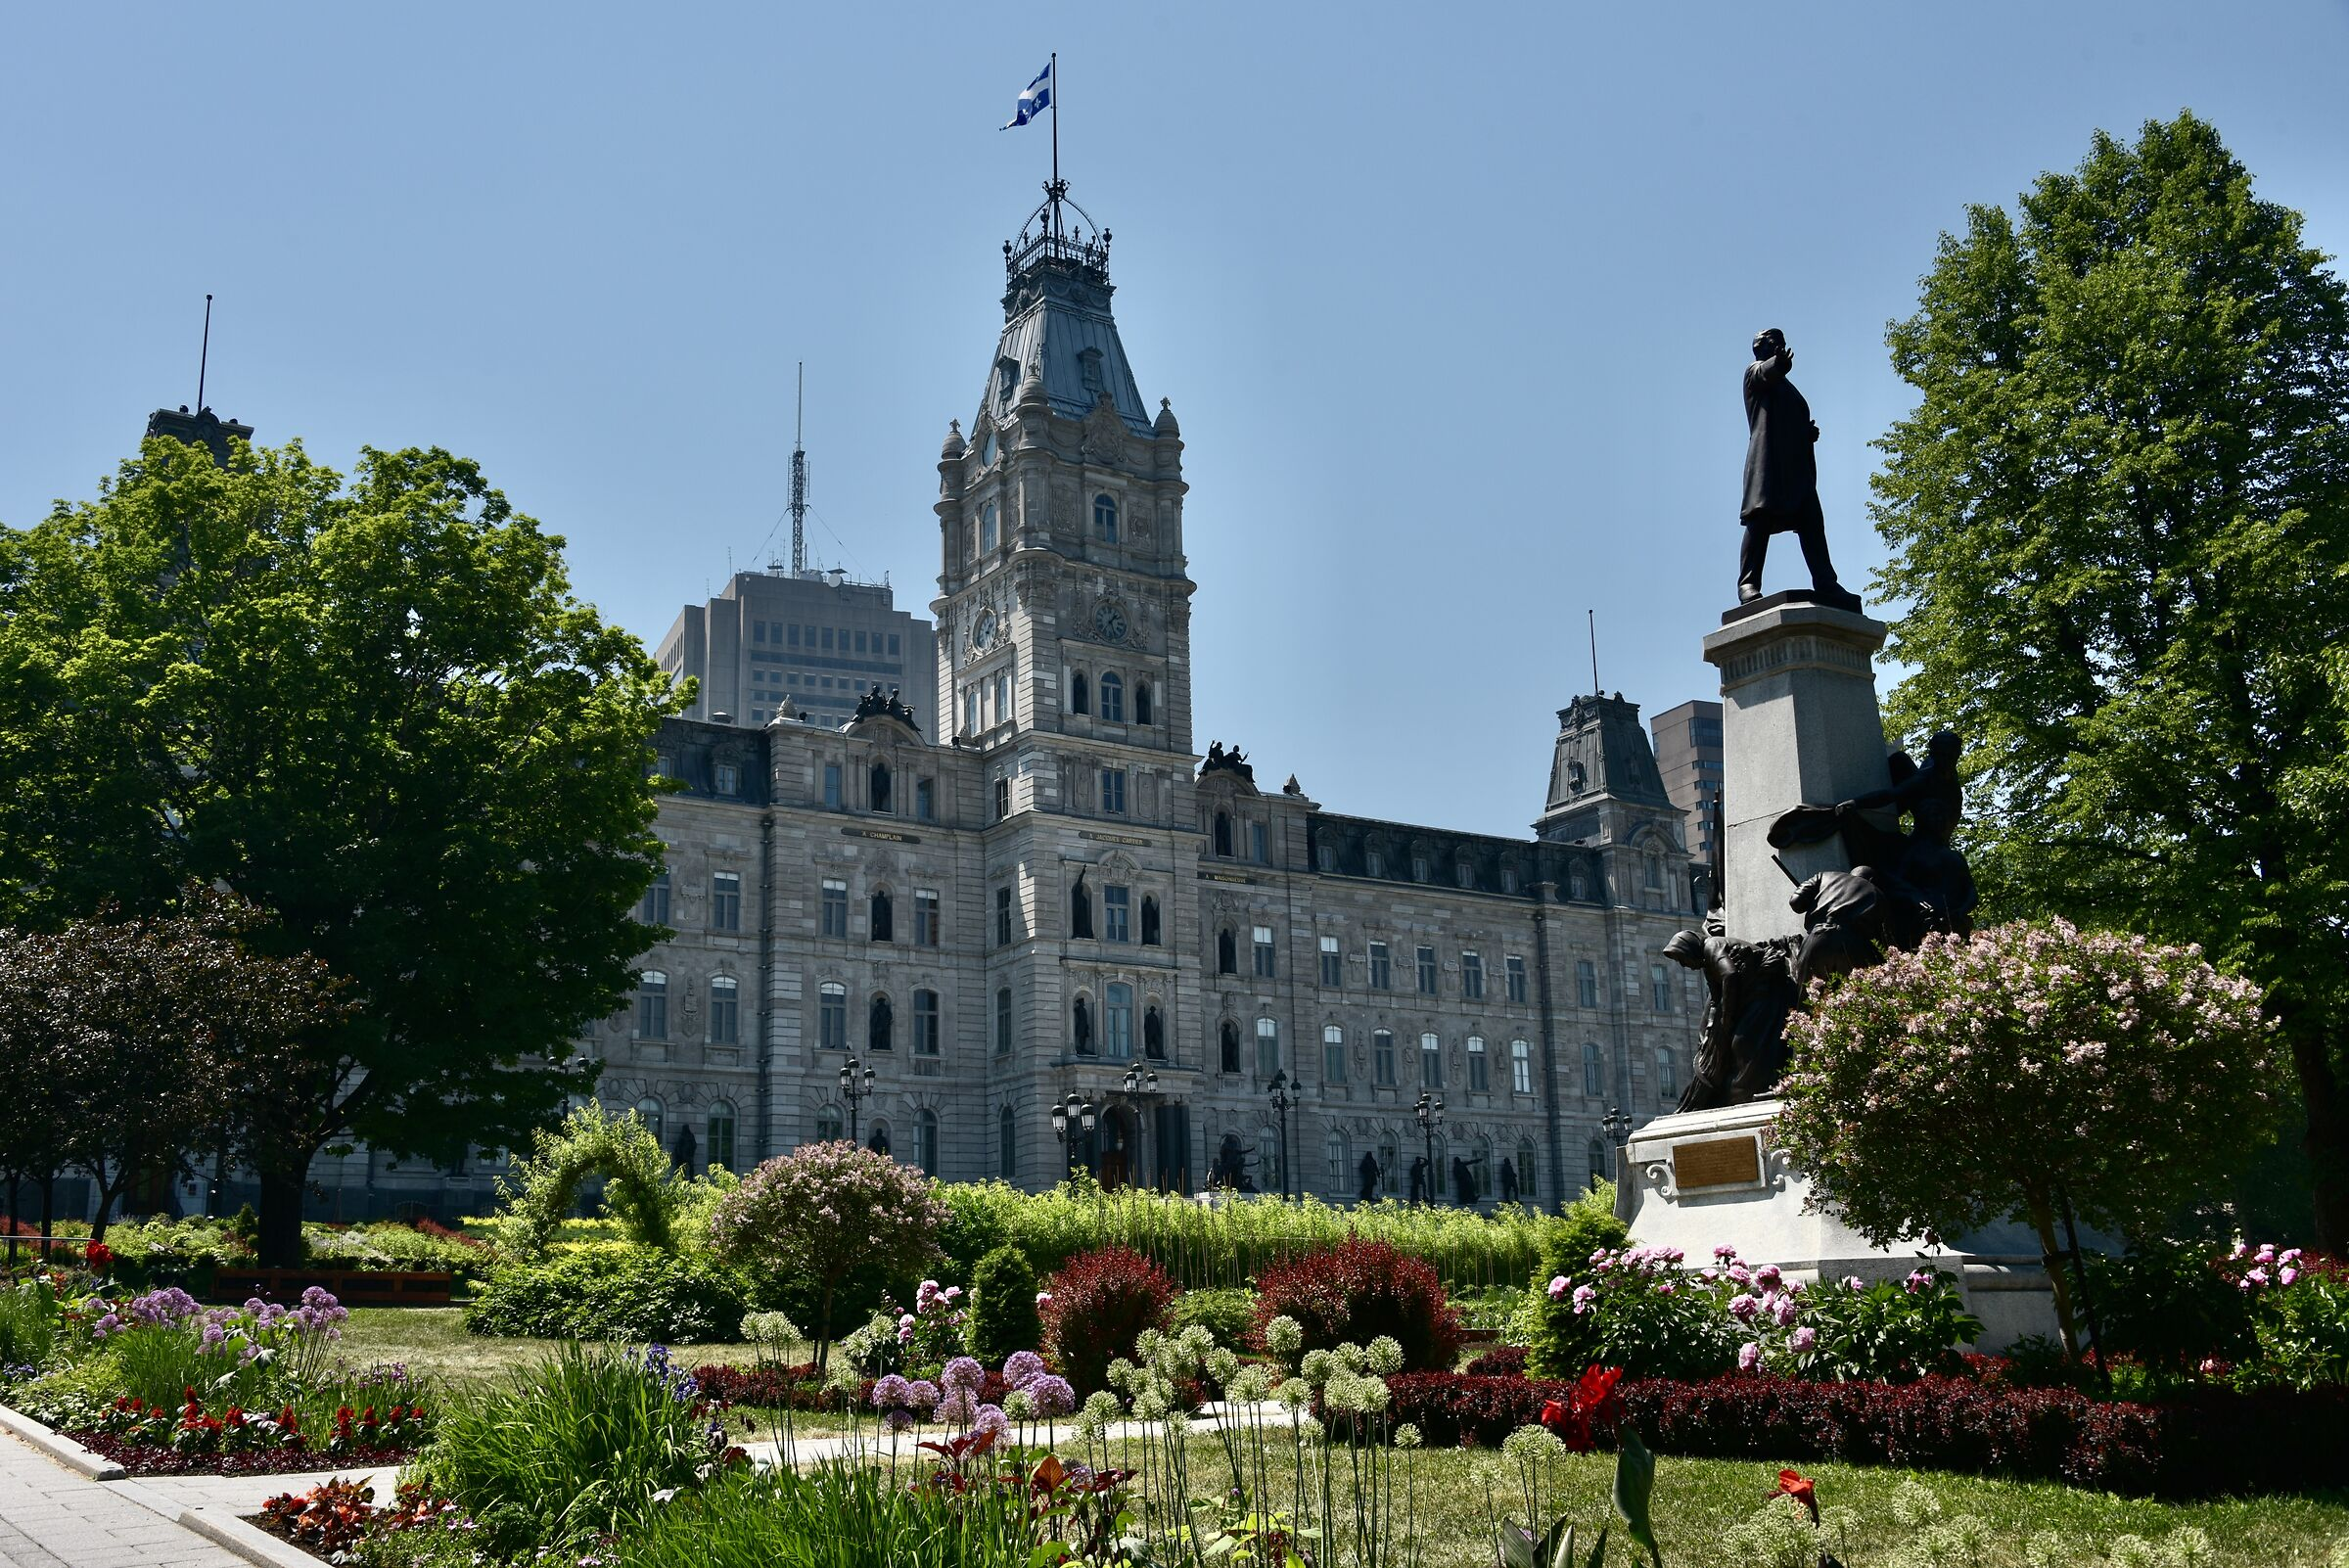 The following photos, visit to Quebec City 2020...